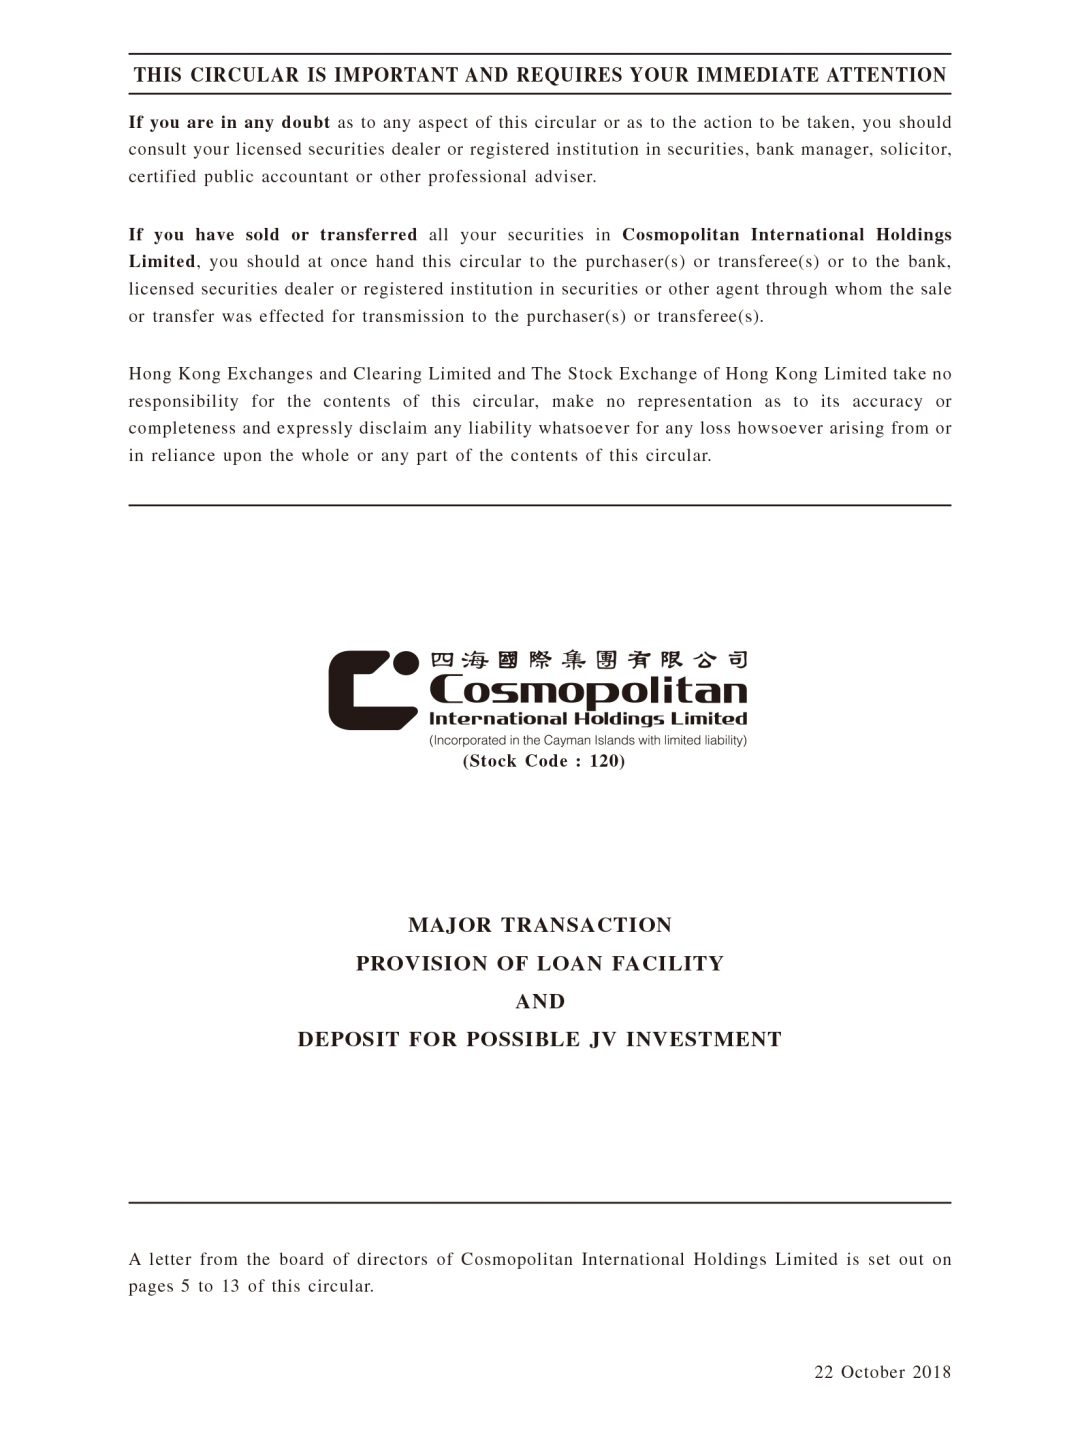 Cosmopolitan International Holdings Limited